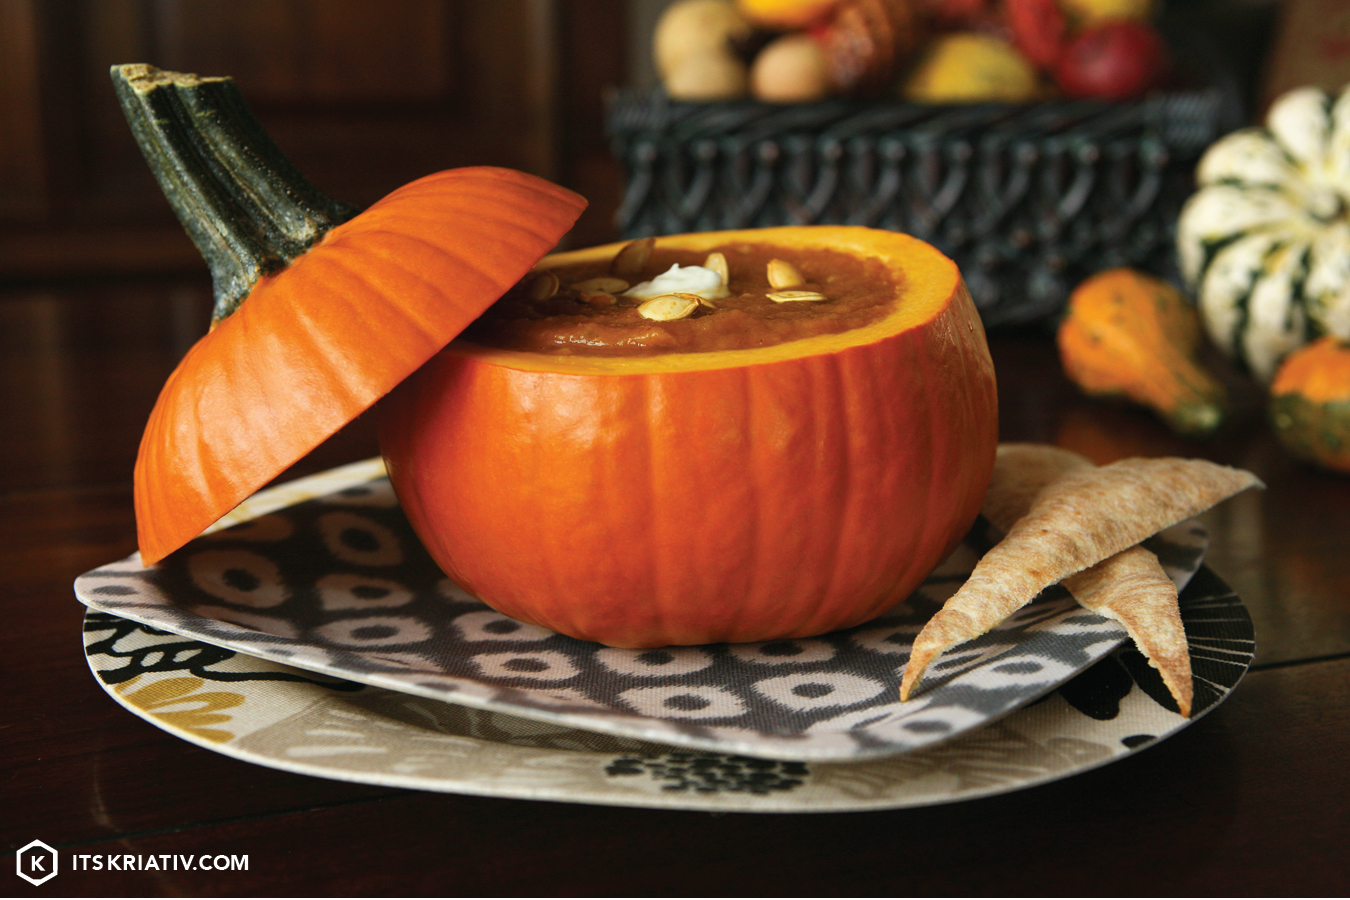 13_Nov_Food-Pumpkin-Soup-01a-07.jpg